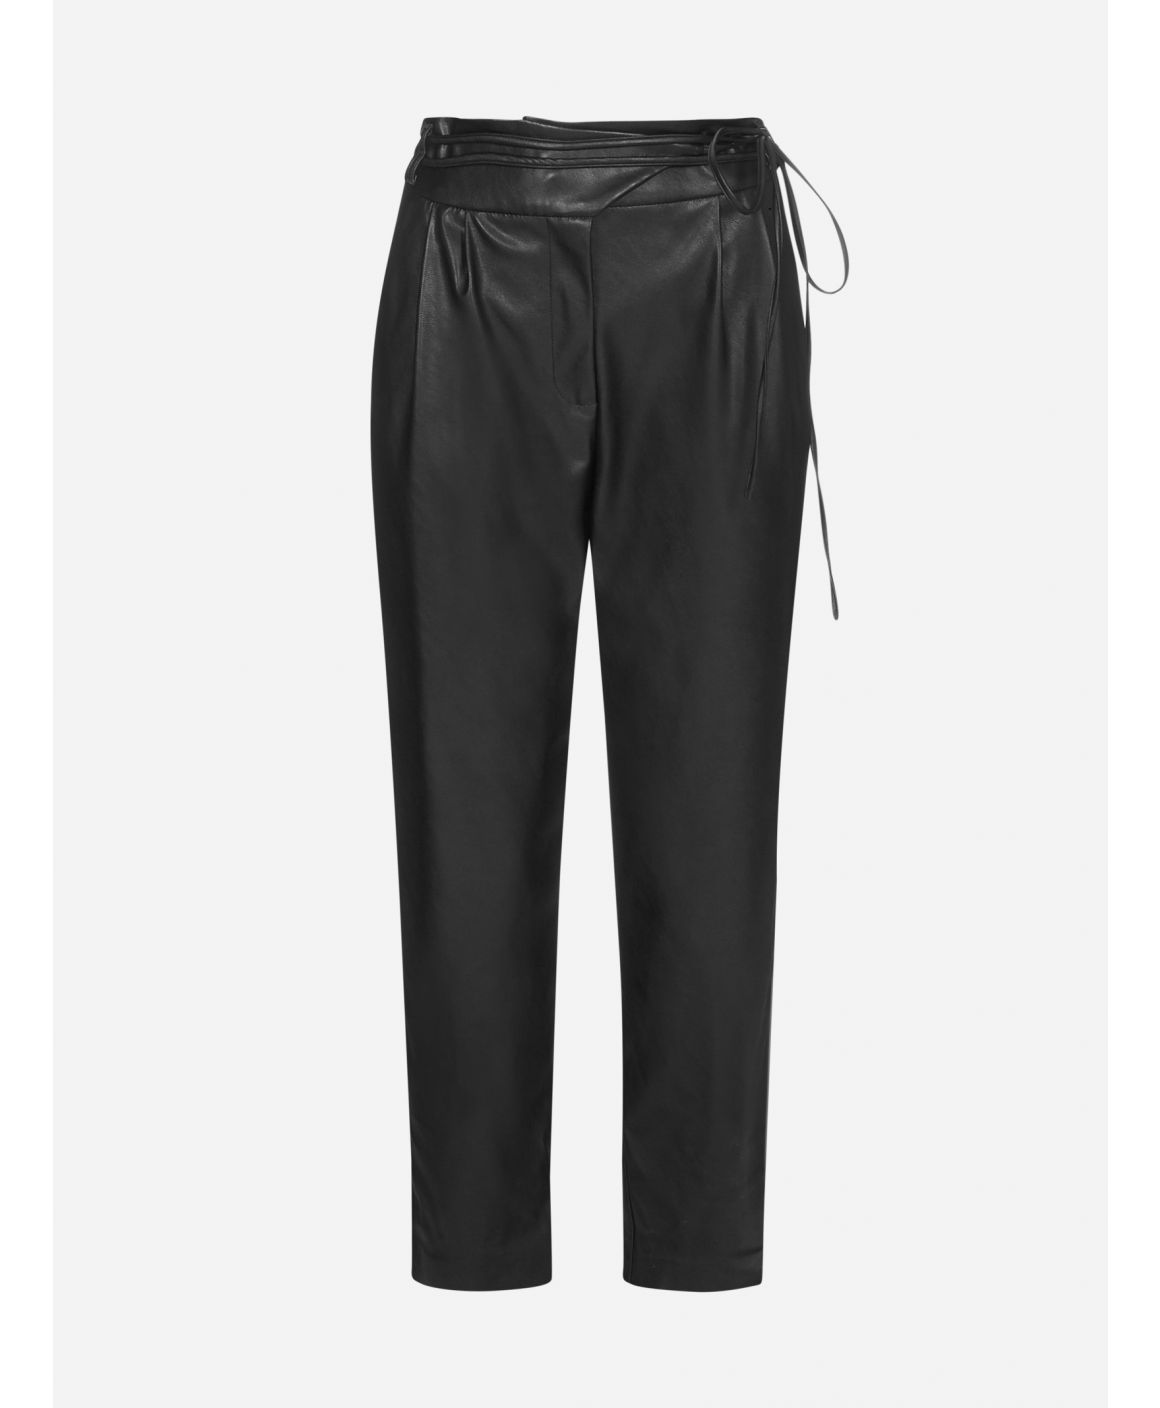 Rapito faux leather trousers